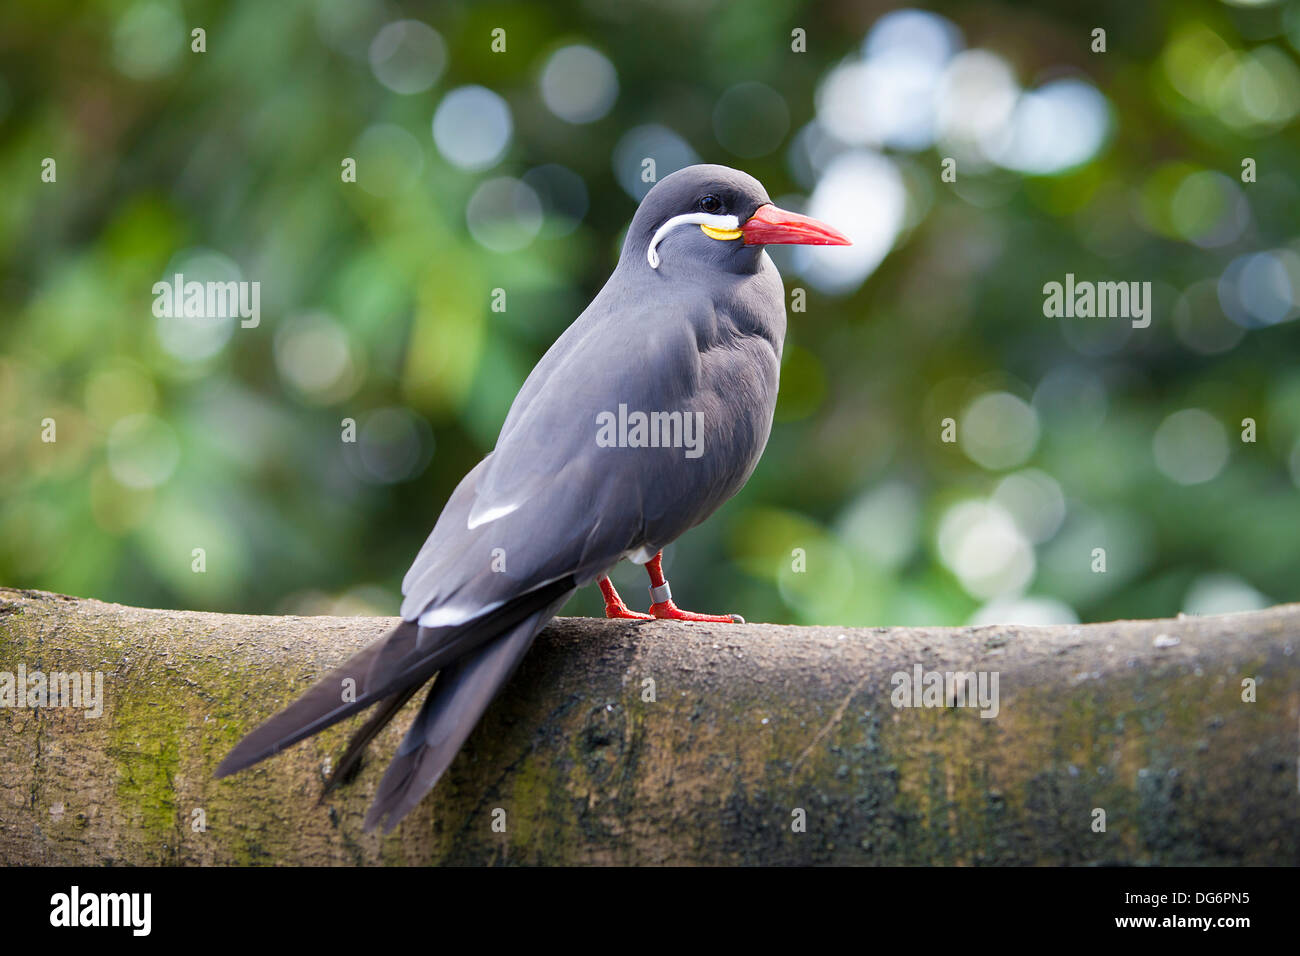 A healthy Inca Tern rests on a branch. These birds are native to Peru and Chili. Stock Photo